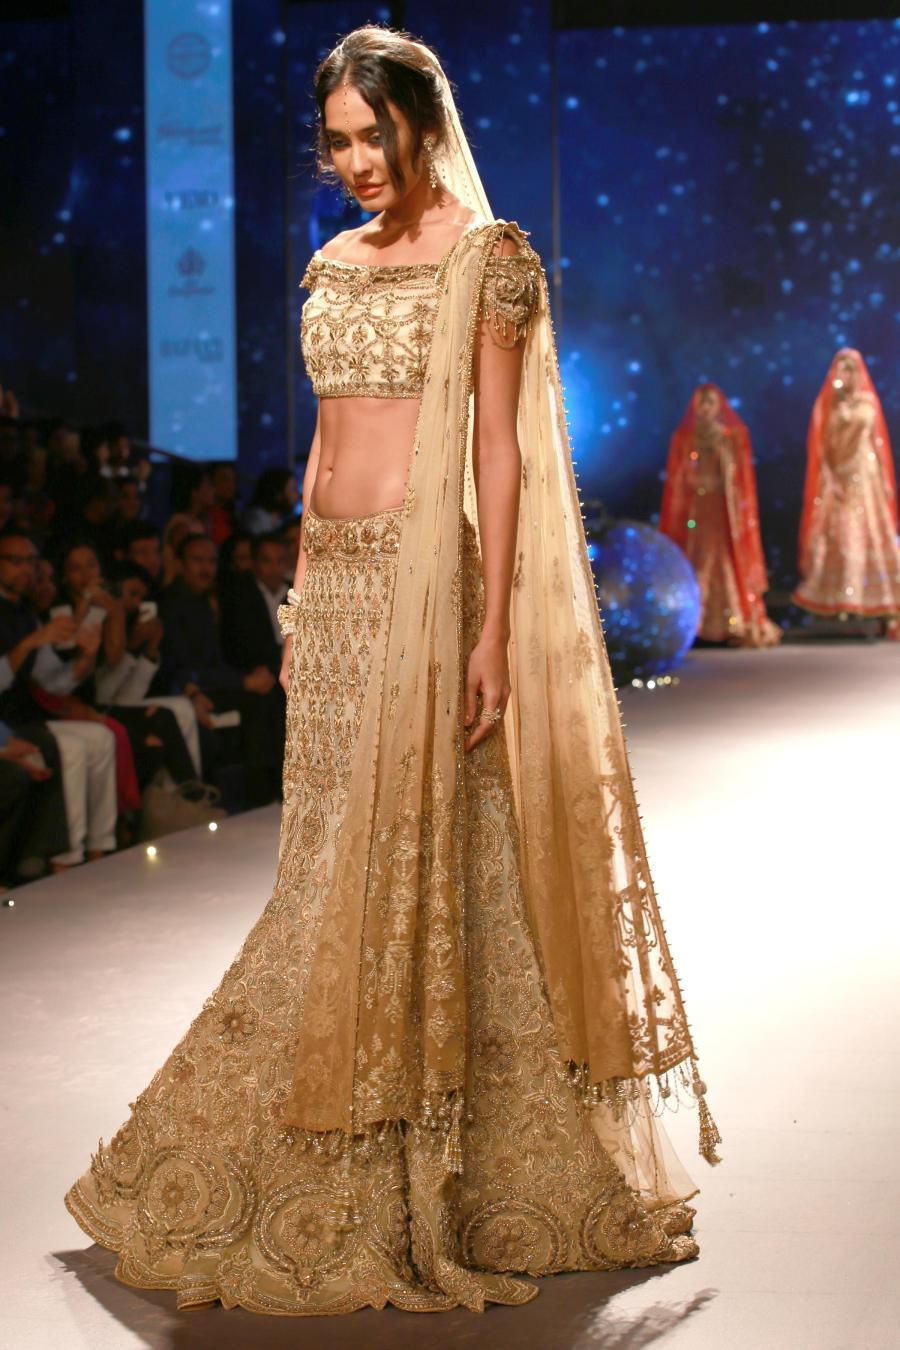 Lisa Haydon Walk at BMW India Bridal Fashion Week 2015